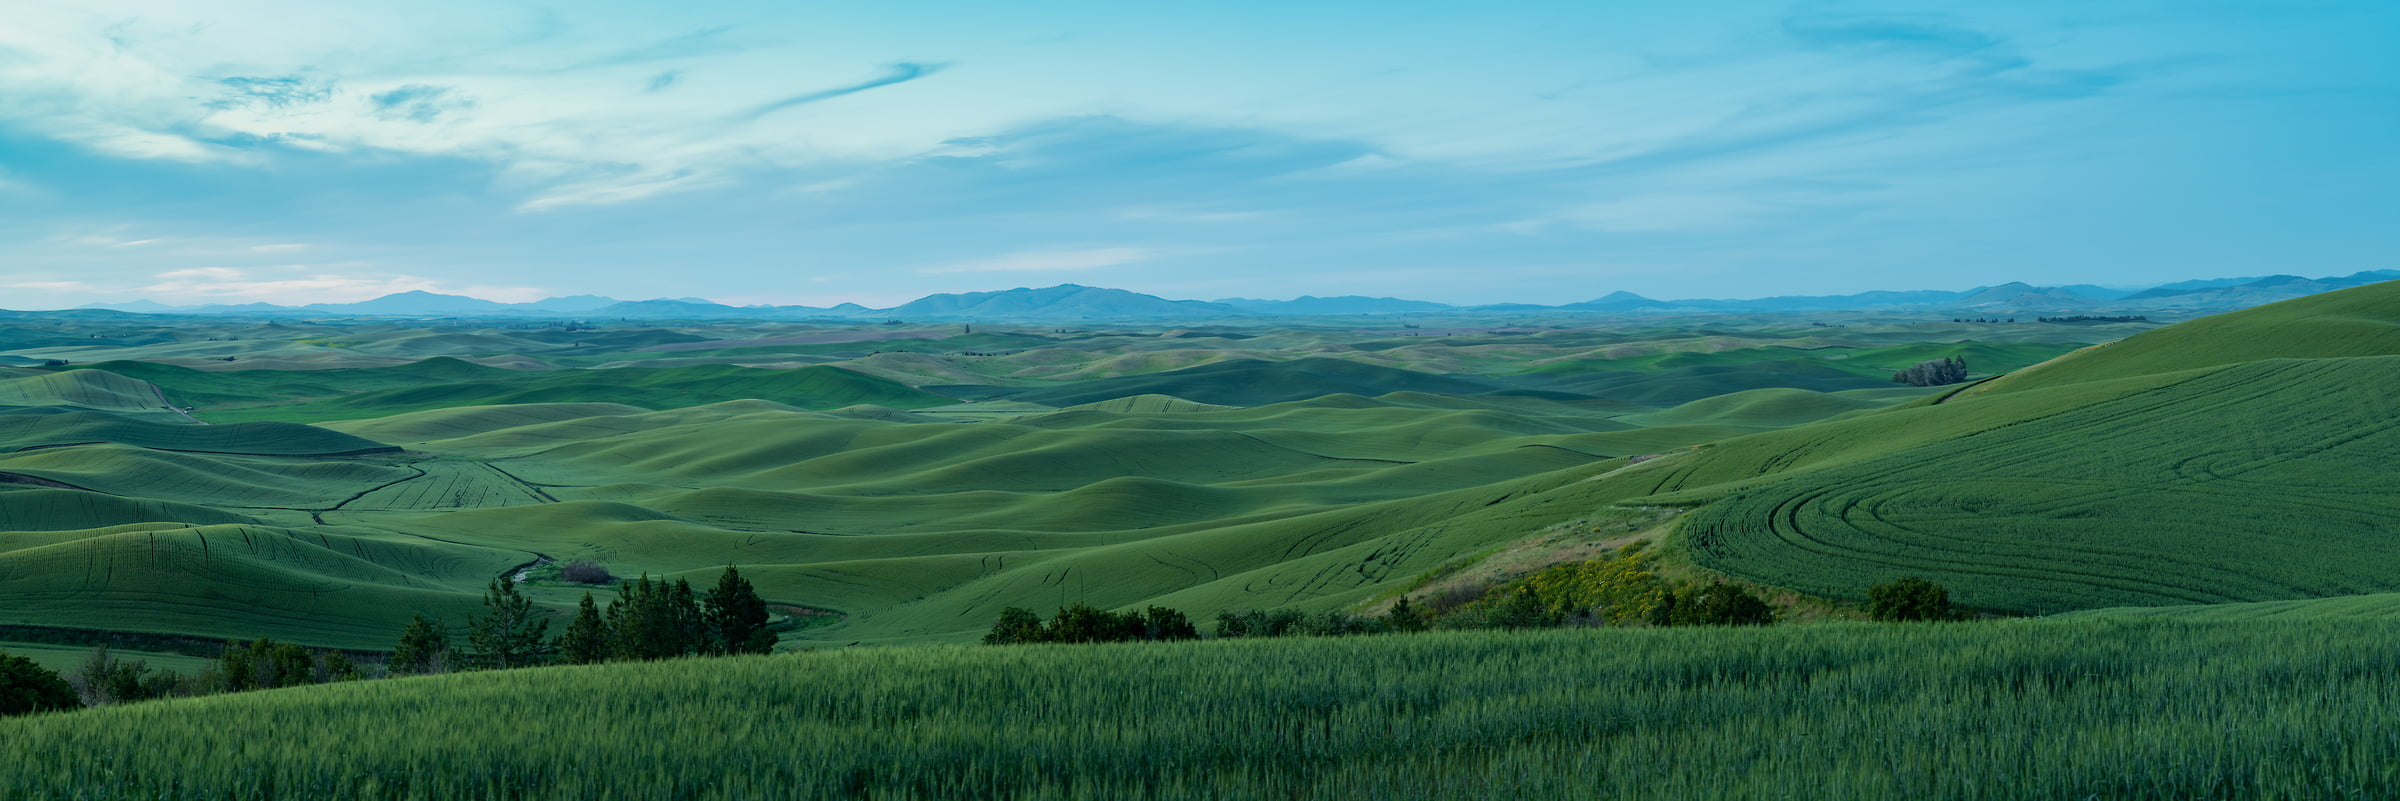 362 megapixels! A very high resolution, large-format VAST photo print of rolling hills at dusk; panorama landscape photograph created by Greg Probst in Steptoe Butte State Park, Washington